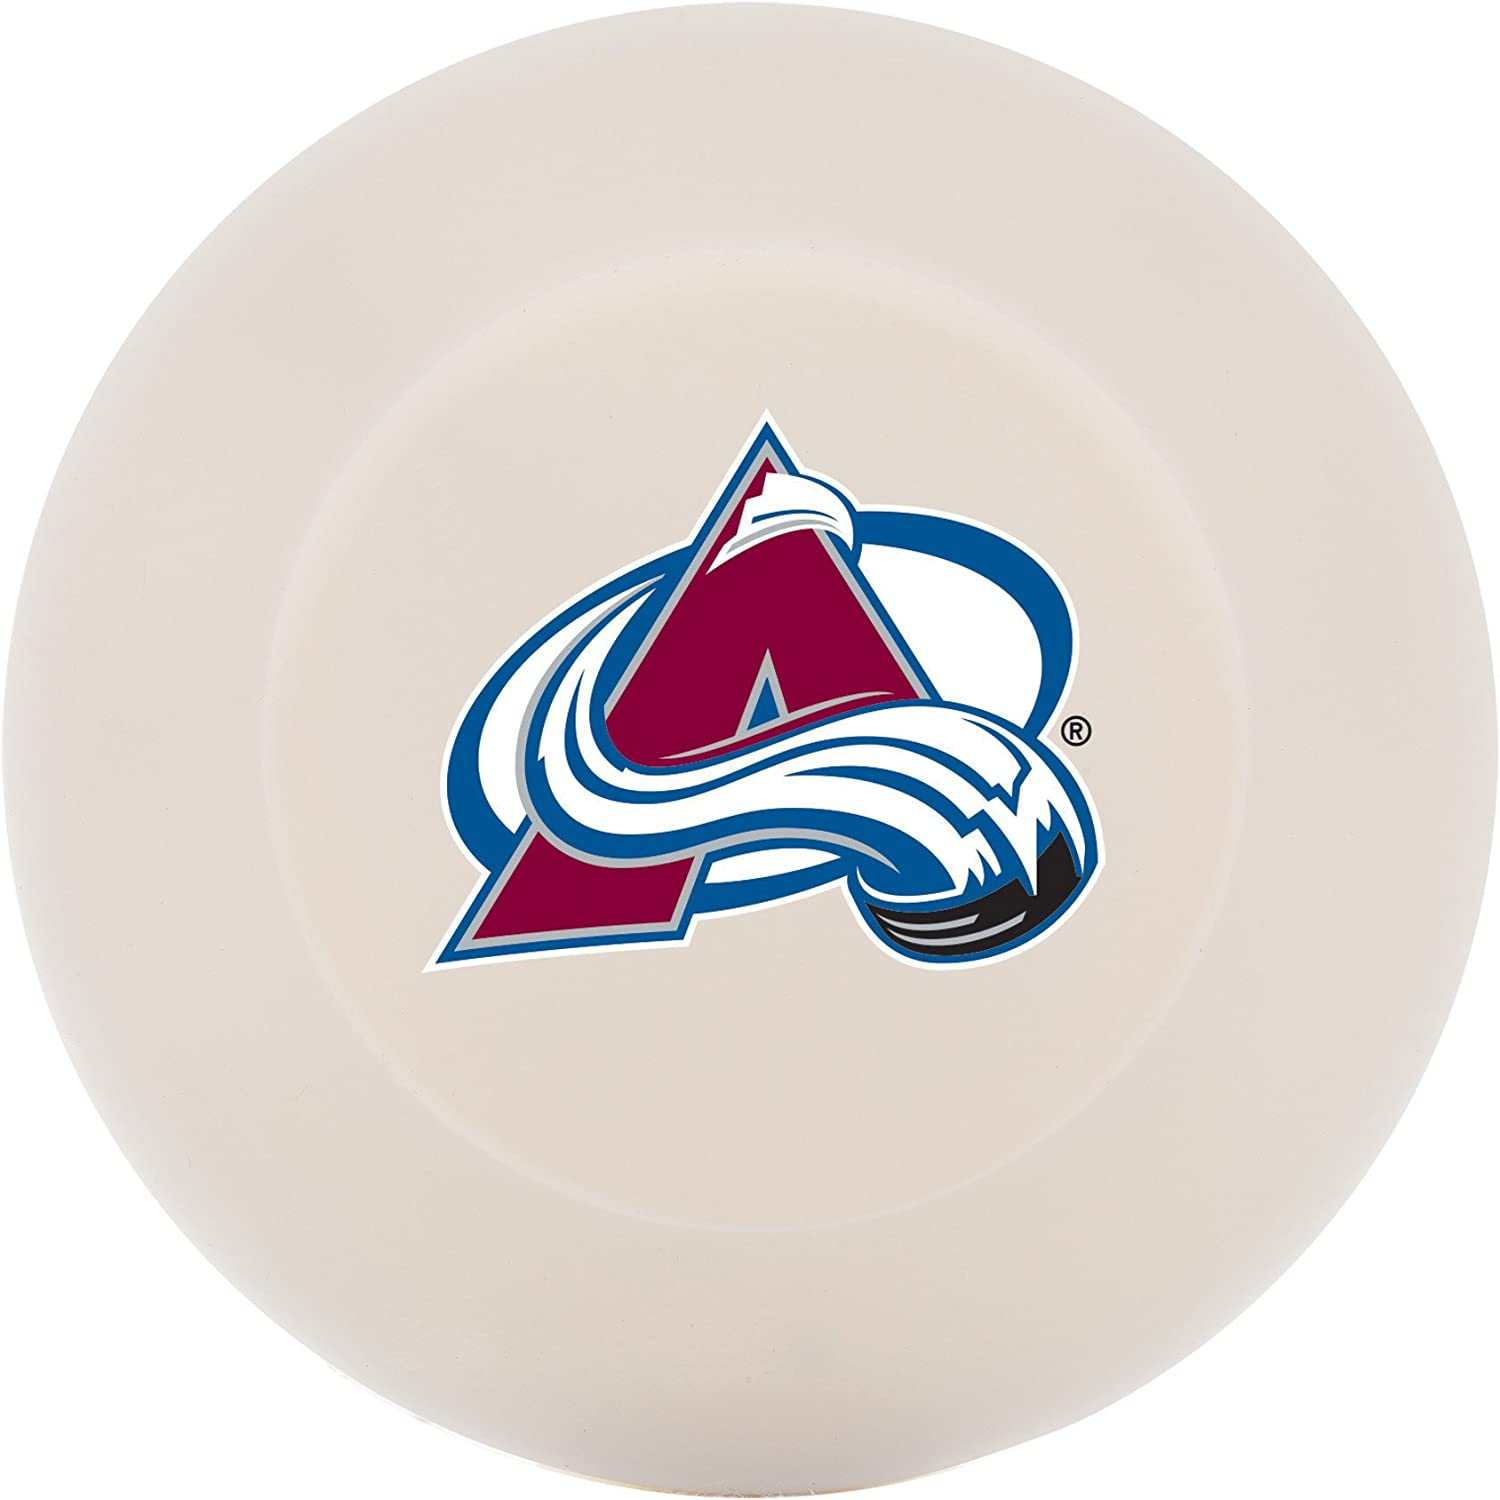 Franklin Sports Colorado Avalanche Street Hockey Puck - Molded PVC Team Logo Puck for Smooth Surfaces - NHL Official Licensed Product : Sports & Outdoors